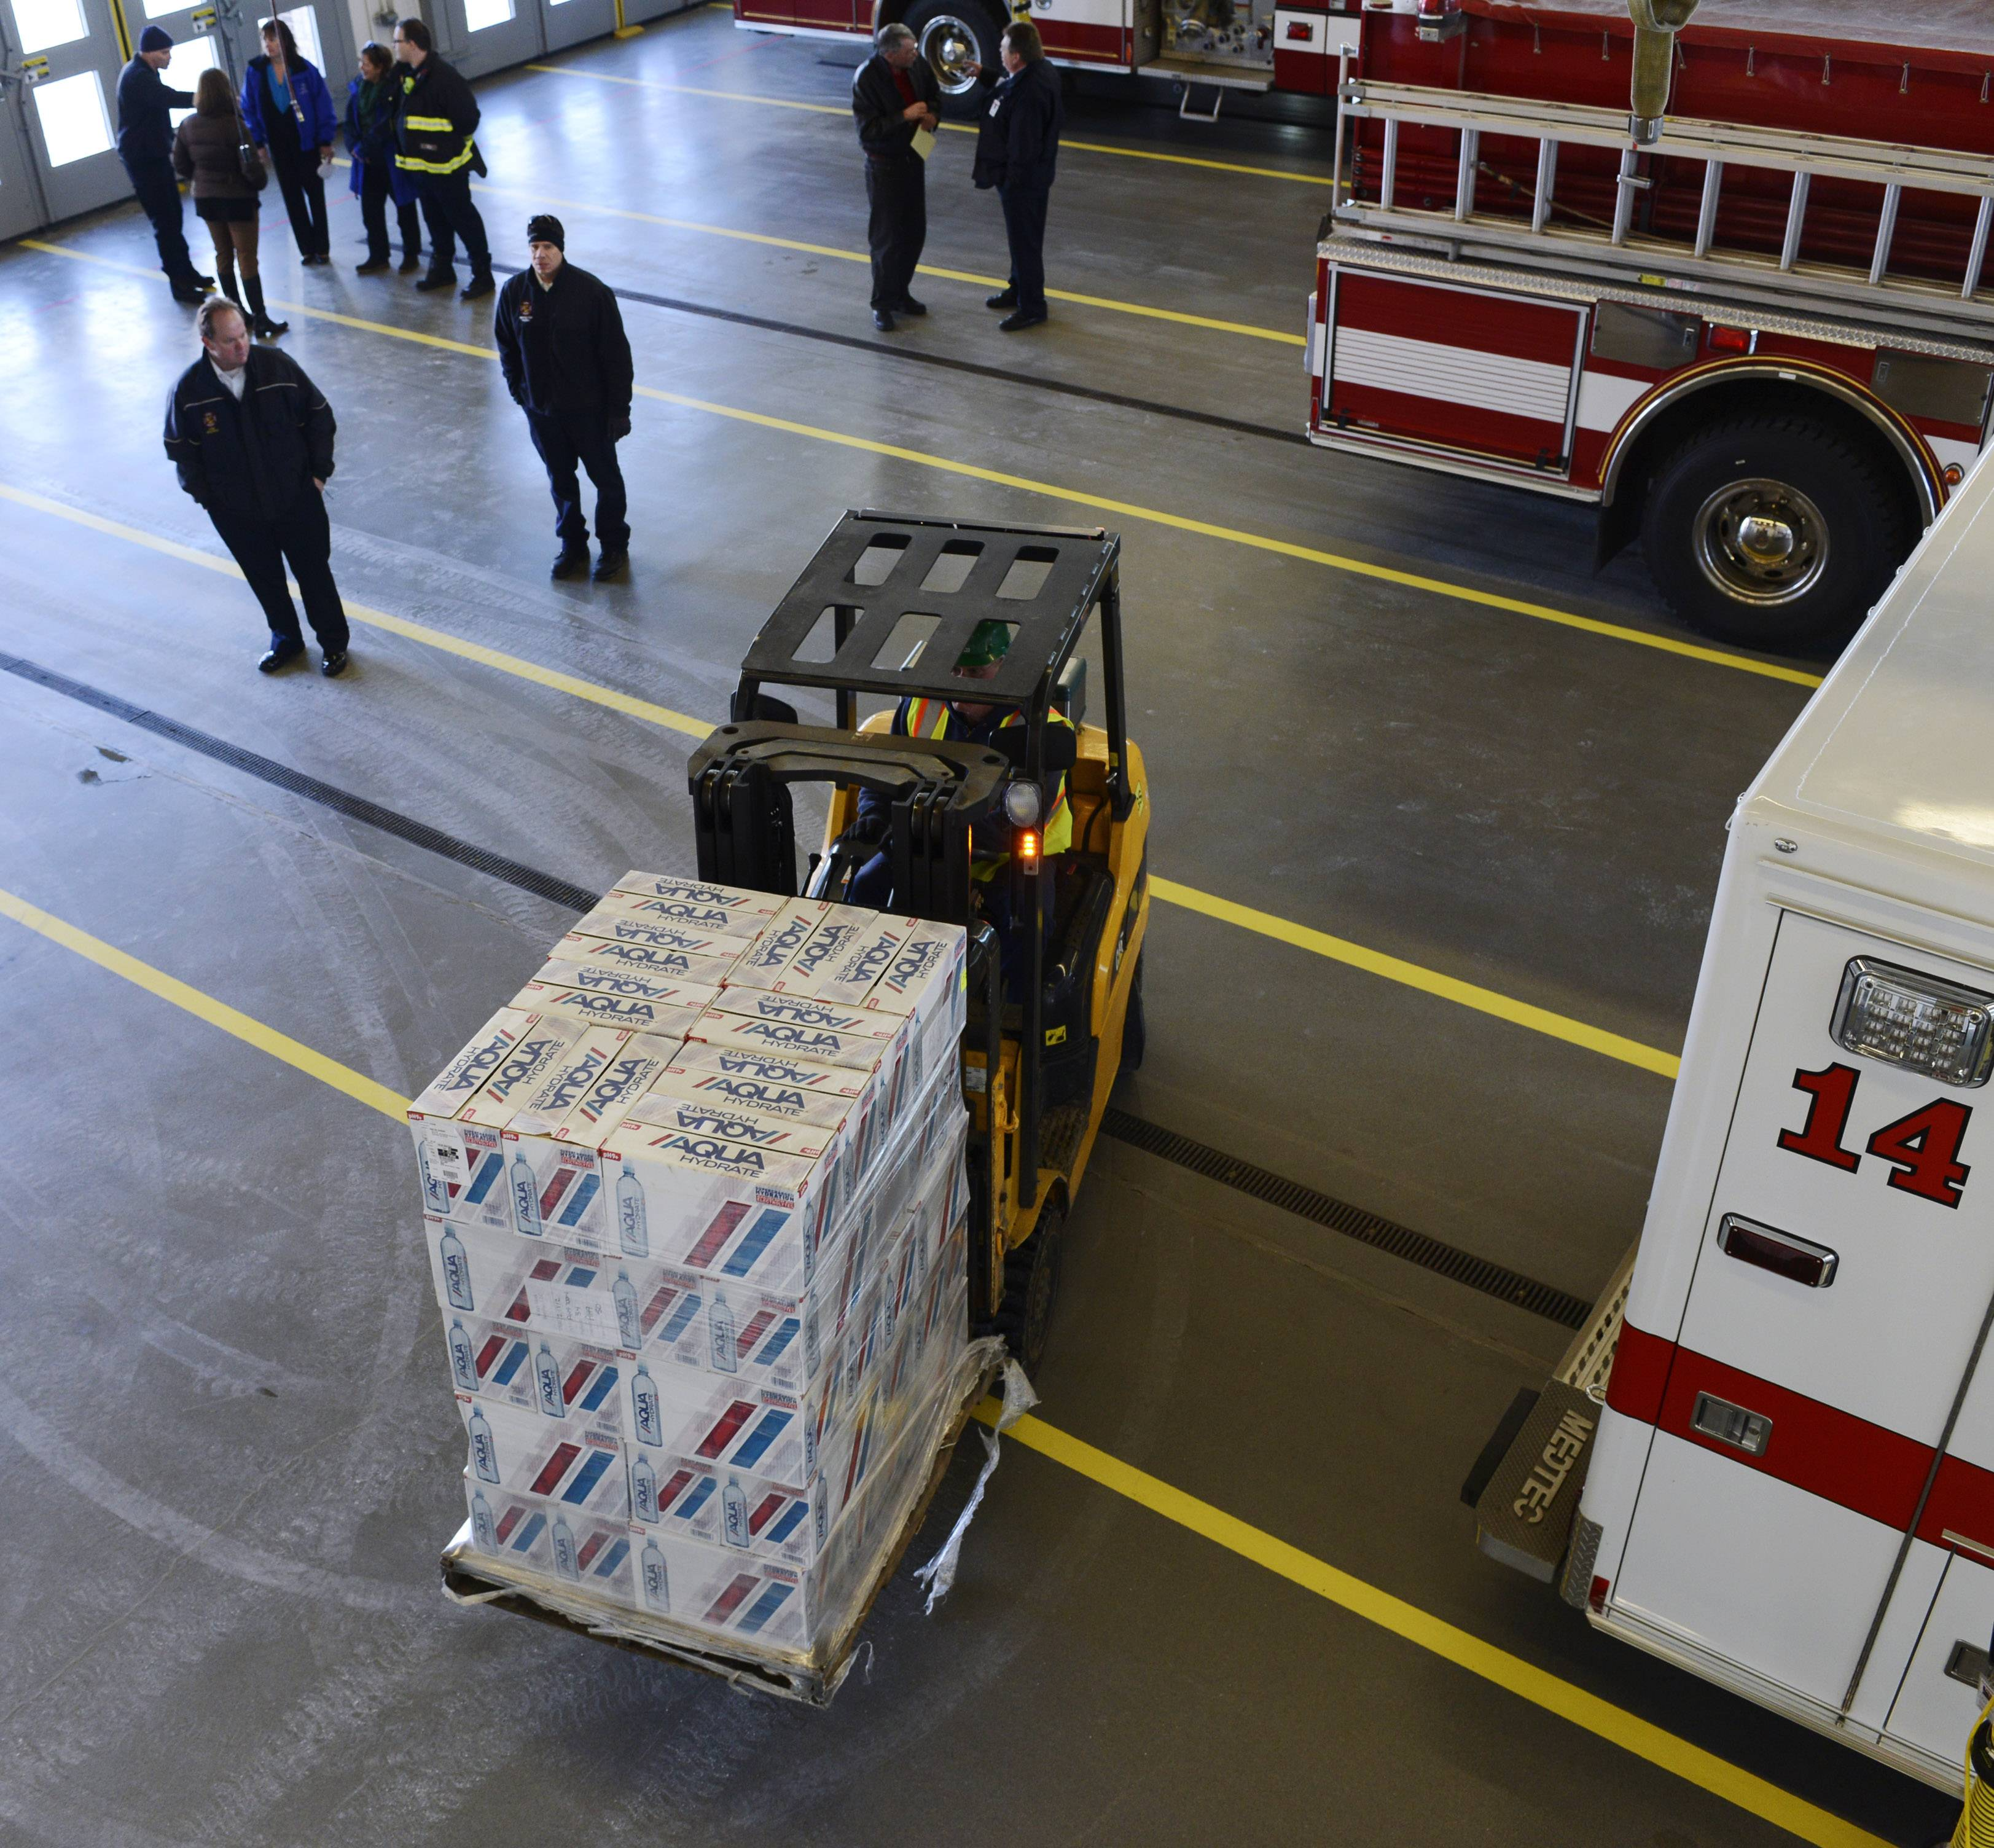 Oklahoma City-based Feed the Children delivered about 25,000 pounds of food and other items Thursday to Mount Prospect Fire Station 14 on Kensington Road. The donation will benefit more than 400 struggling families in the village.